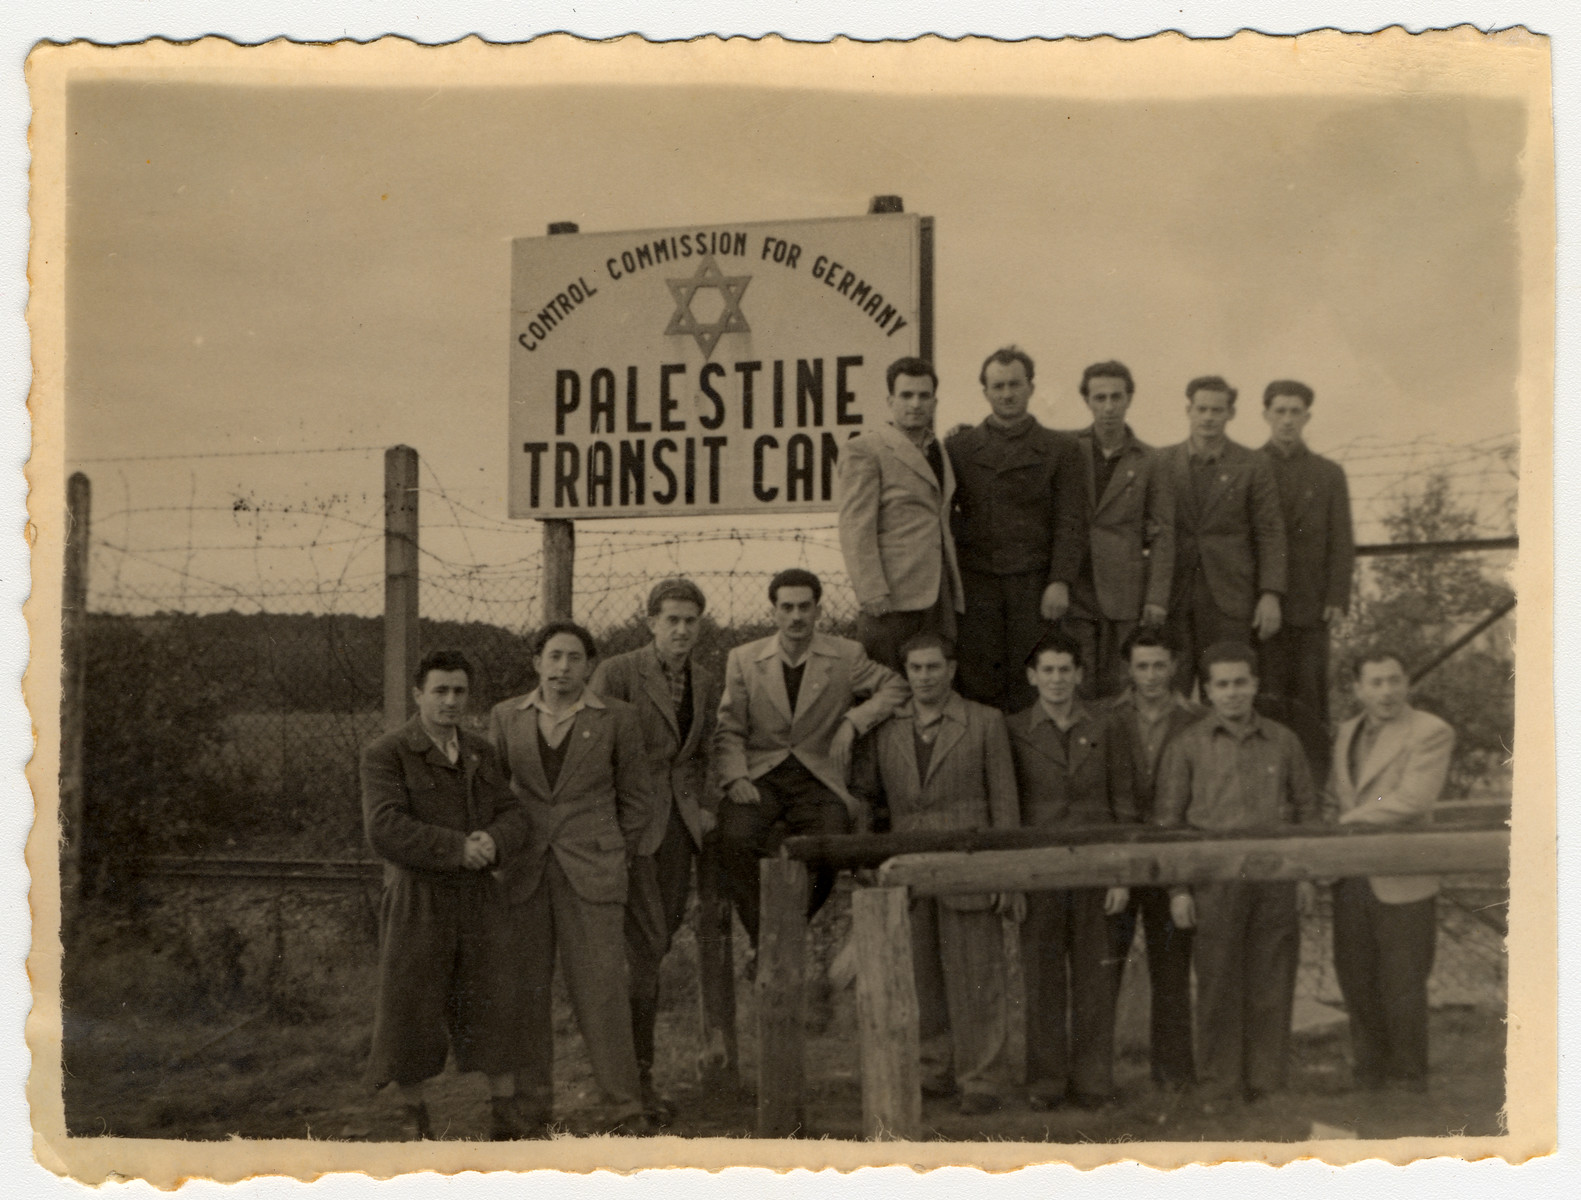 Jewish men pose by the sign at the Palestine Transit Camp prior to their leaving Germany for Palestine.